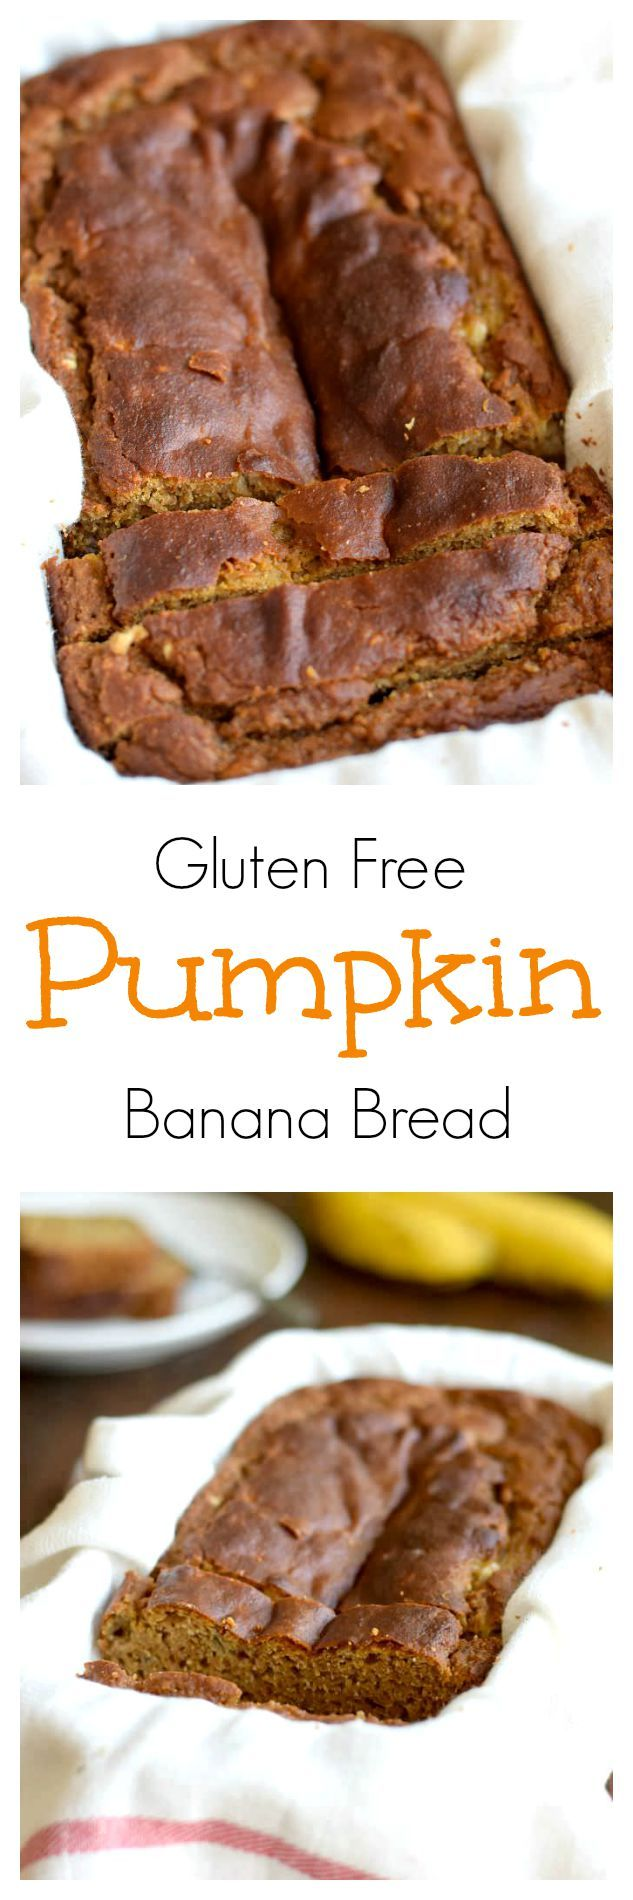 Almond Flour Pumpkin Banana Bread #GlutenFree #Paleo